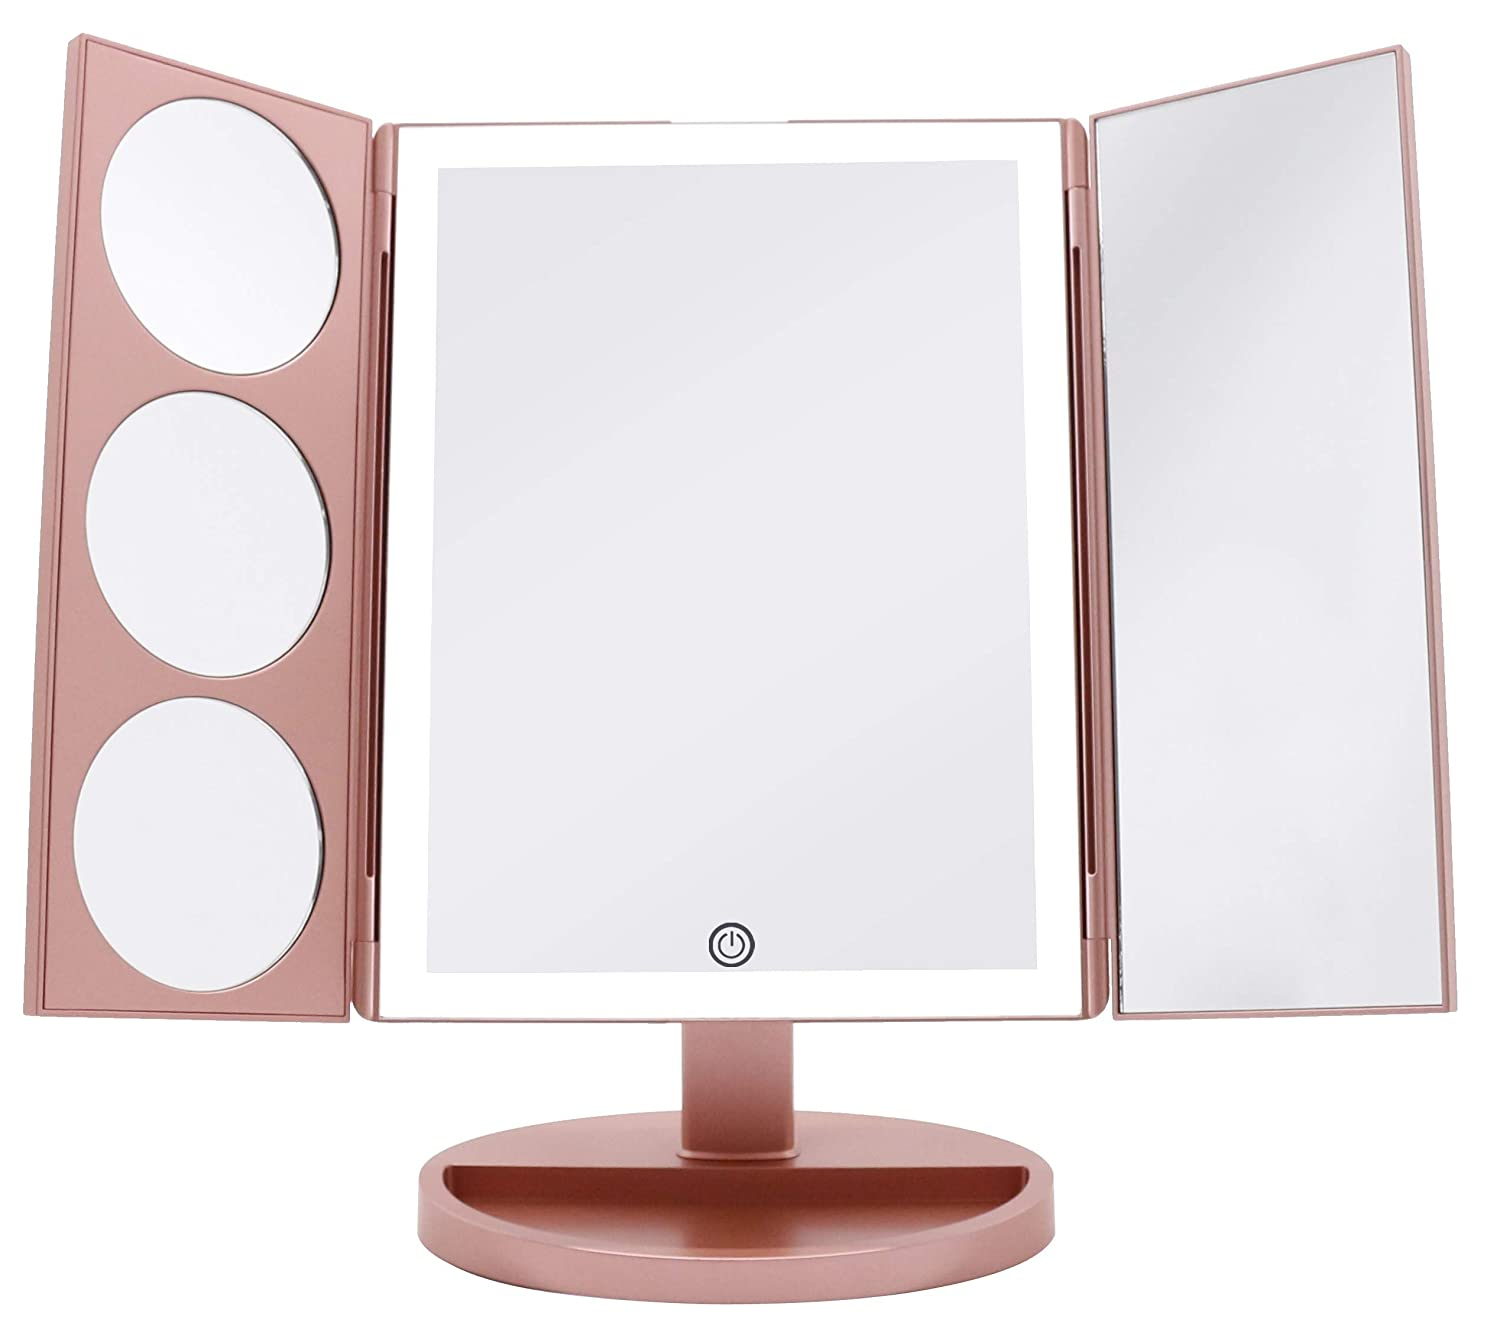 Milzie Makeup Vanity Mirror with 44 Natural White LED Lights, 3x 5x 10x Magnification Lighted Makeup Mirror, Extra Large Unique Tri-Fold Design, Countertop Cosmetic Mirror Rose Gold, X-Large Model